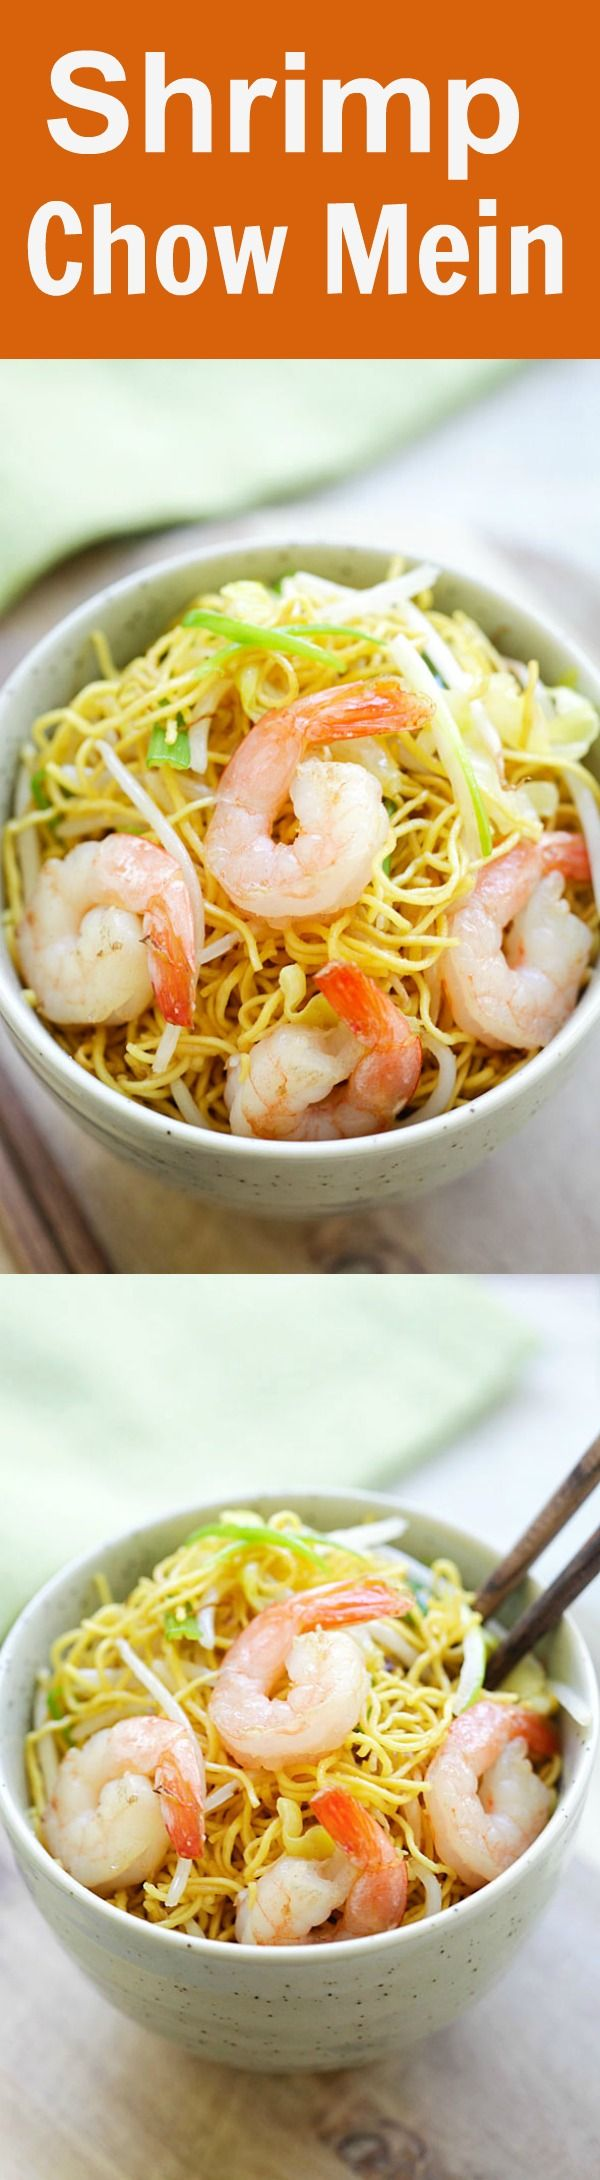 Shrimp Chow Mein - BEST shrimp chow mein recipe ever! This homemade chow mein is loaded with shrimp and so much better than takeouts | rasamalaysia.com